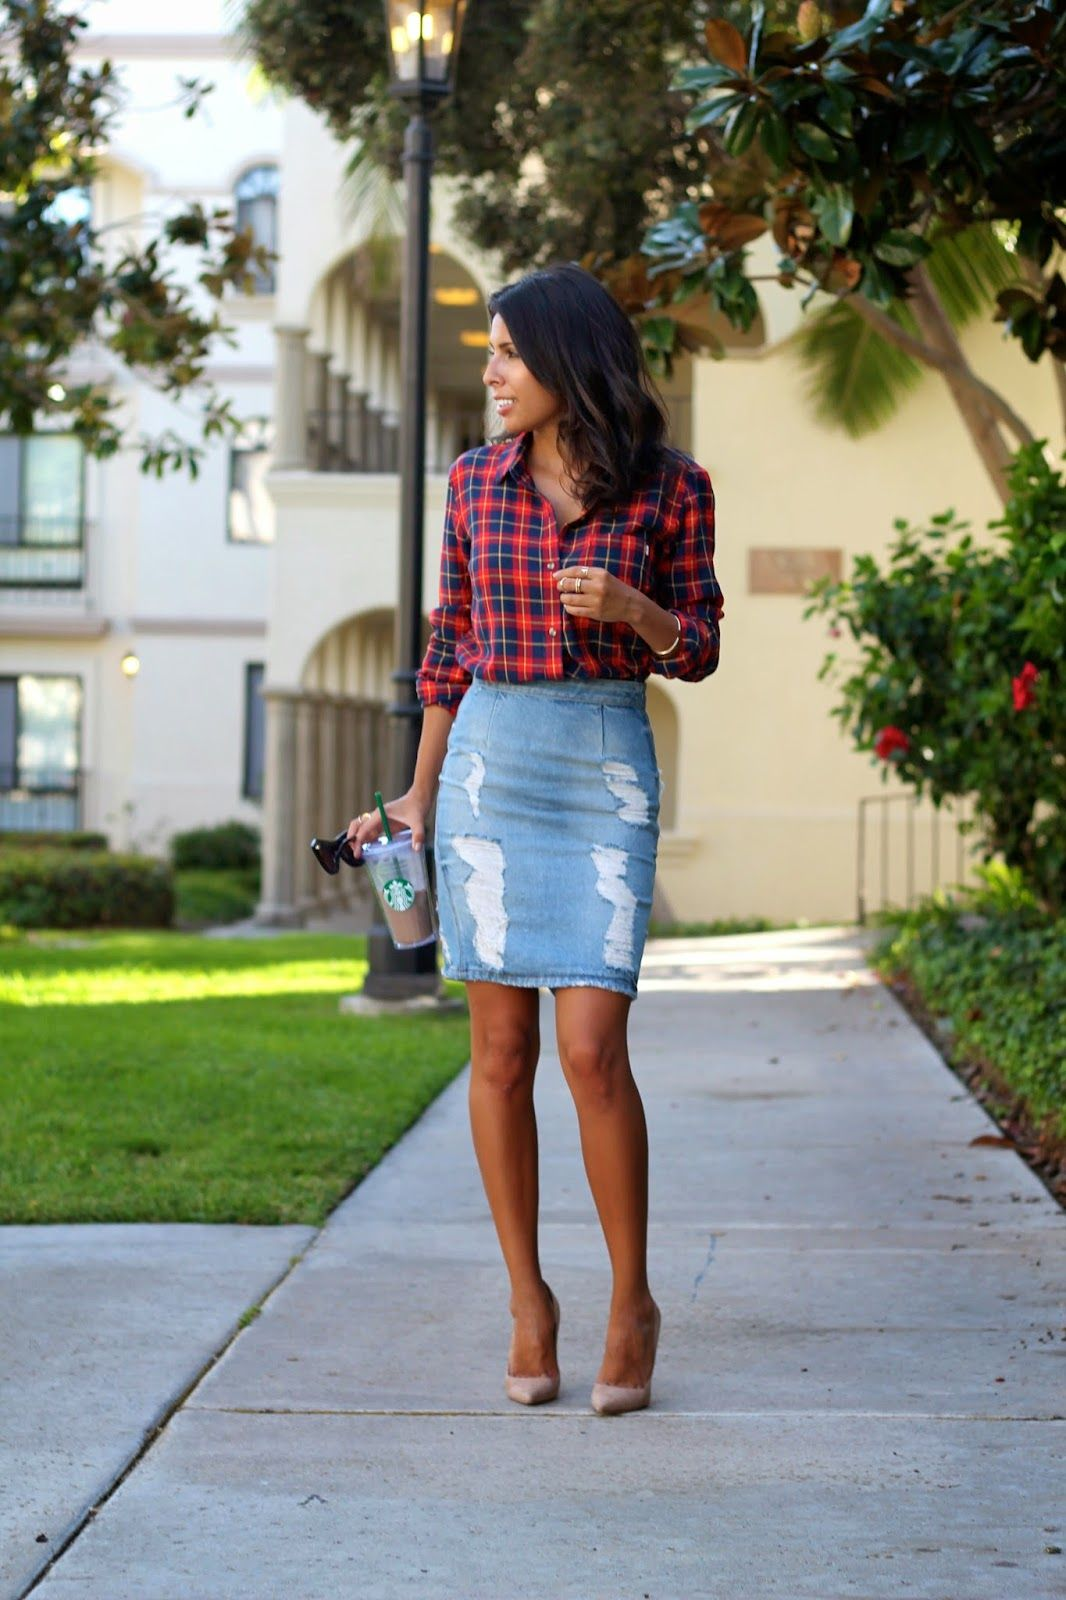 how to style flannel shirt, denim skirt | My Style | Pinterest ...